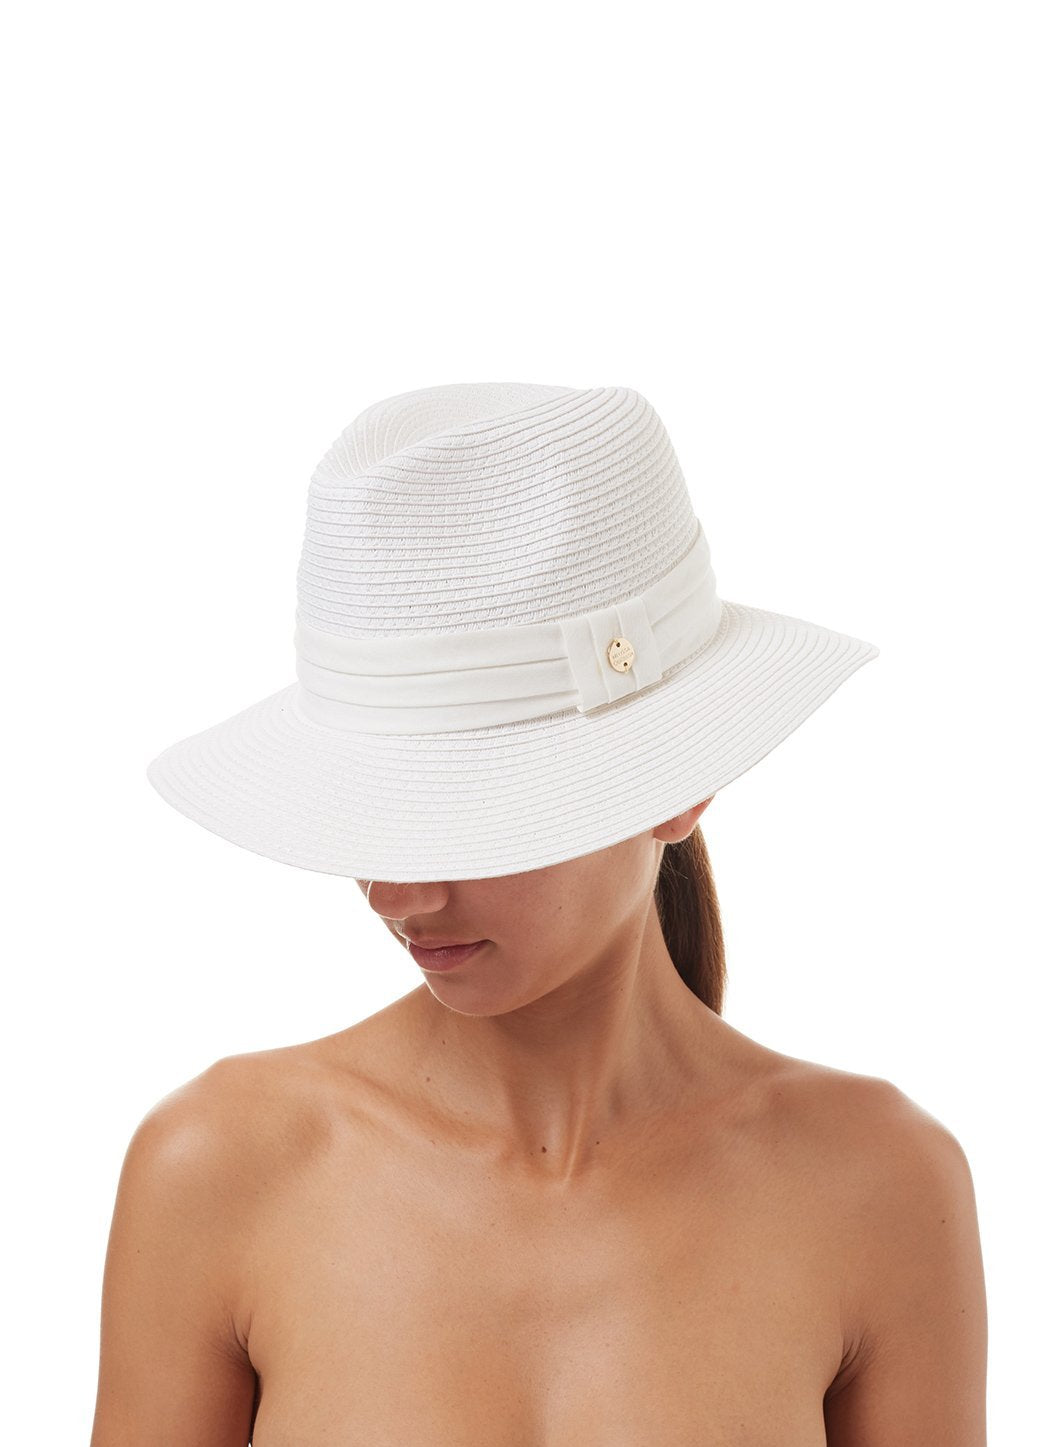 fedora hat white 2019